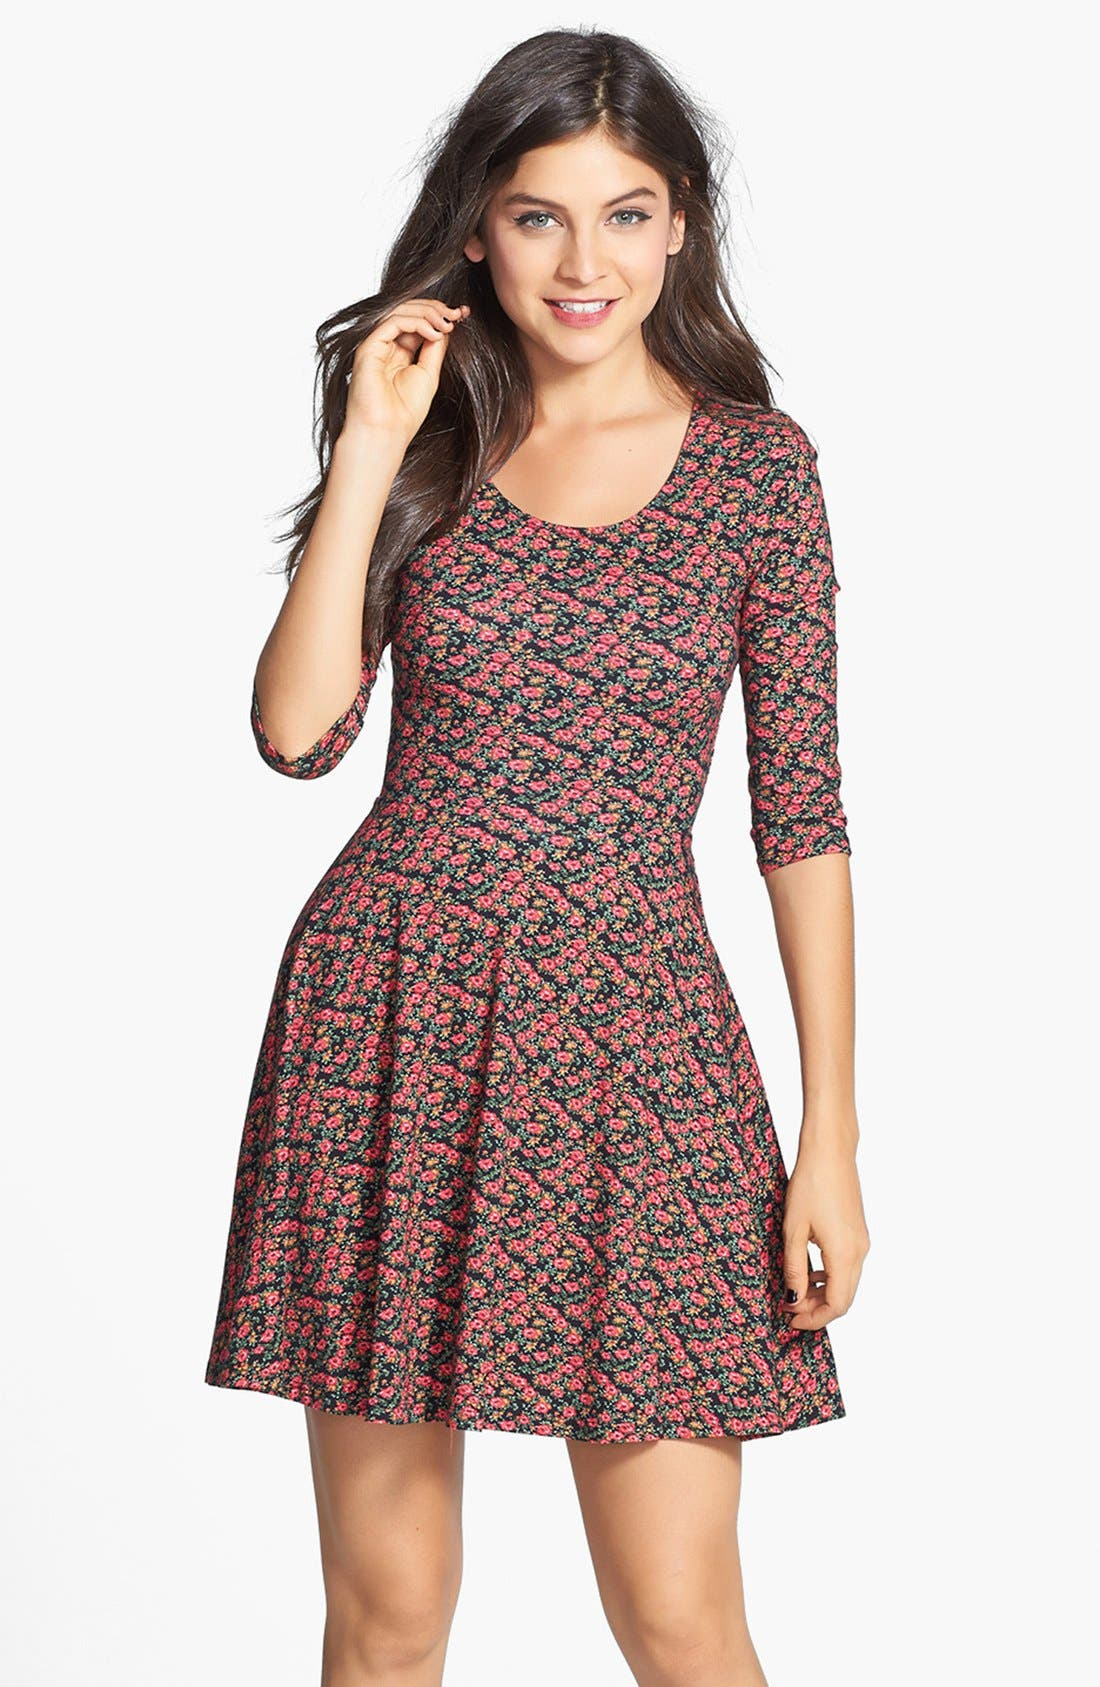 Alternate Image 1 Selected - Lush Floral Print Knit Skater Dress (Juniors)